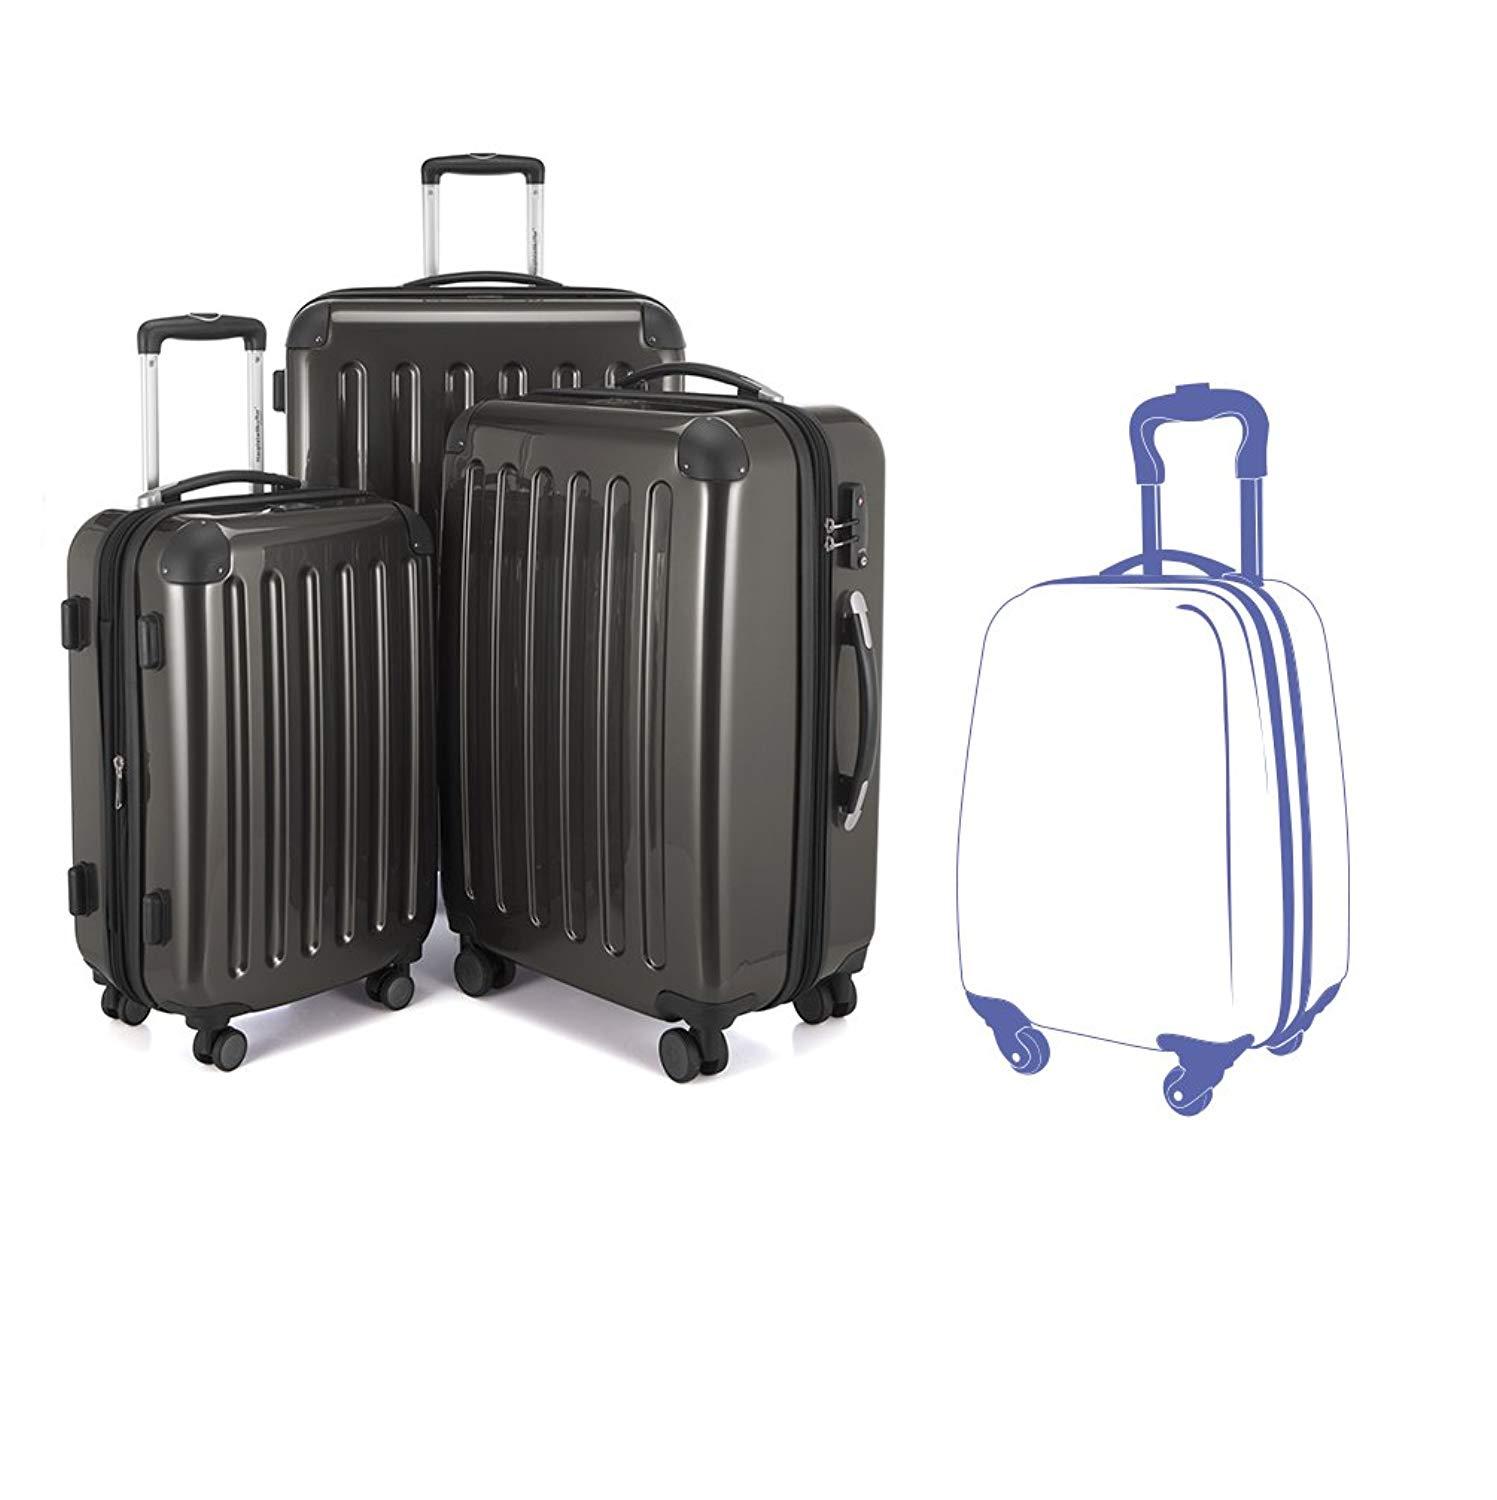 e9235f163964 Cheap Spinner Suitcase Sets, find Spinner Suitcase Sets deals on ...